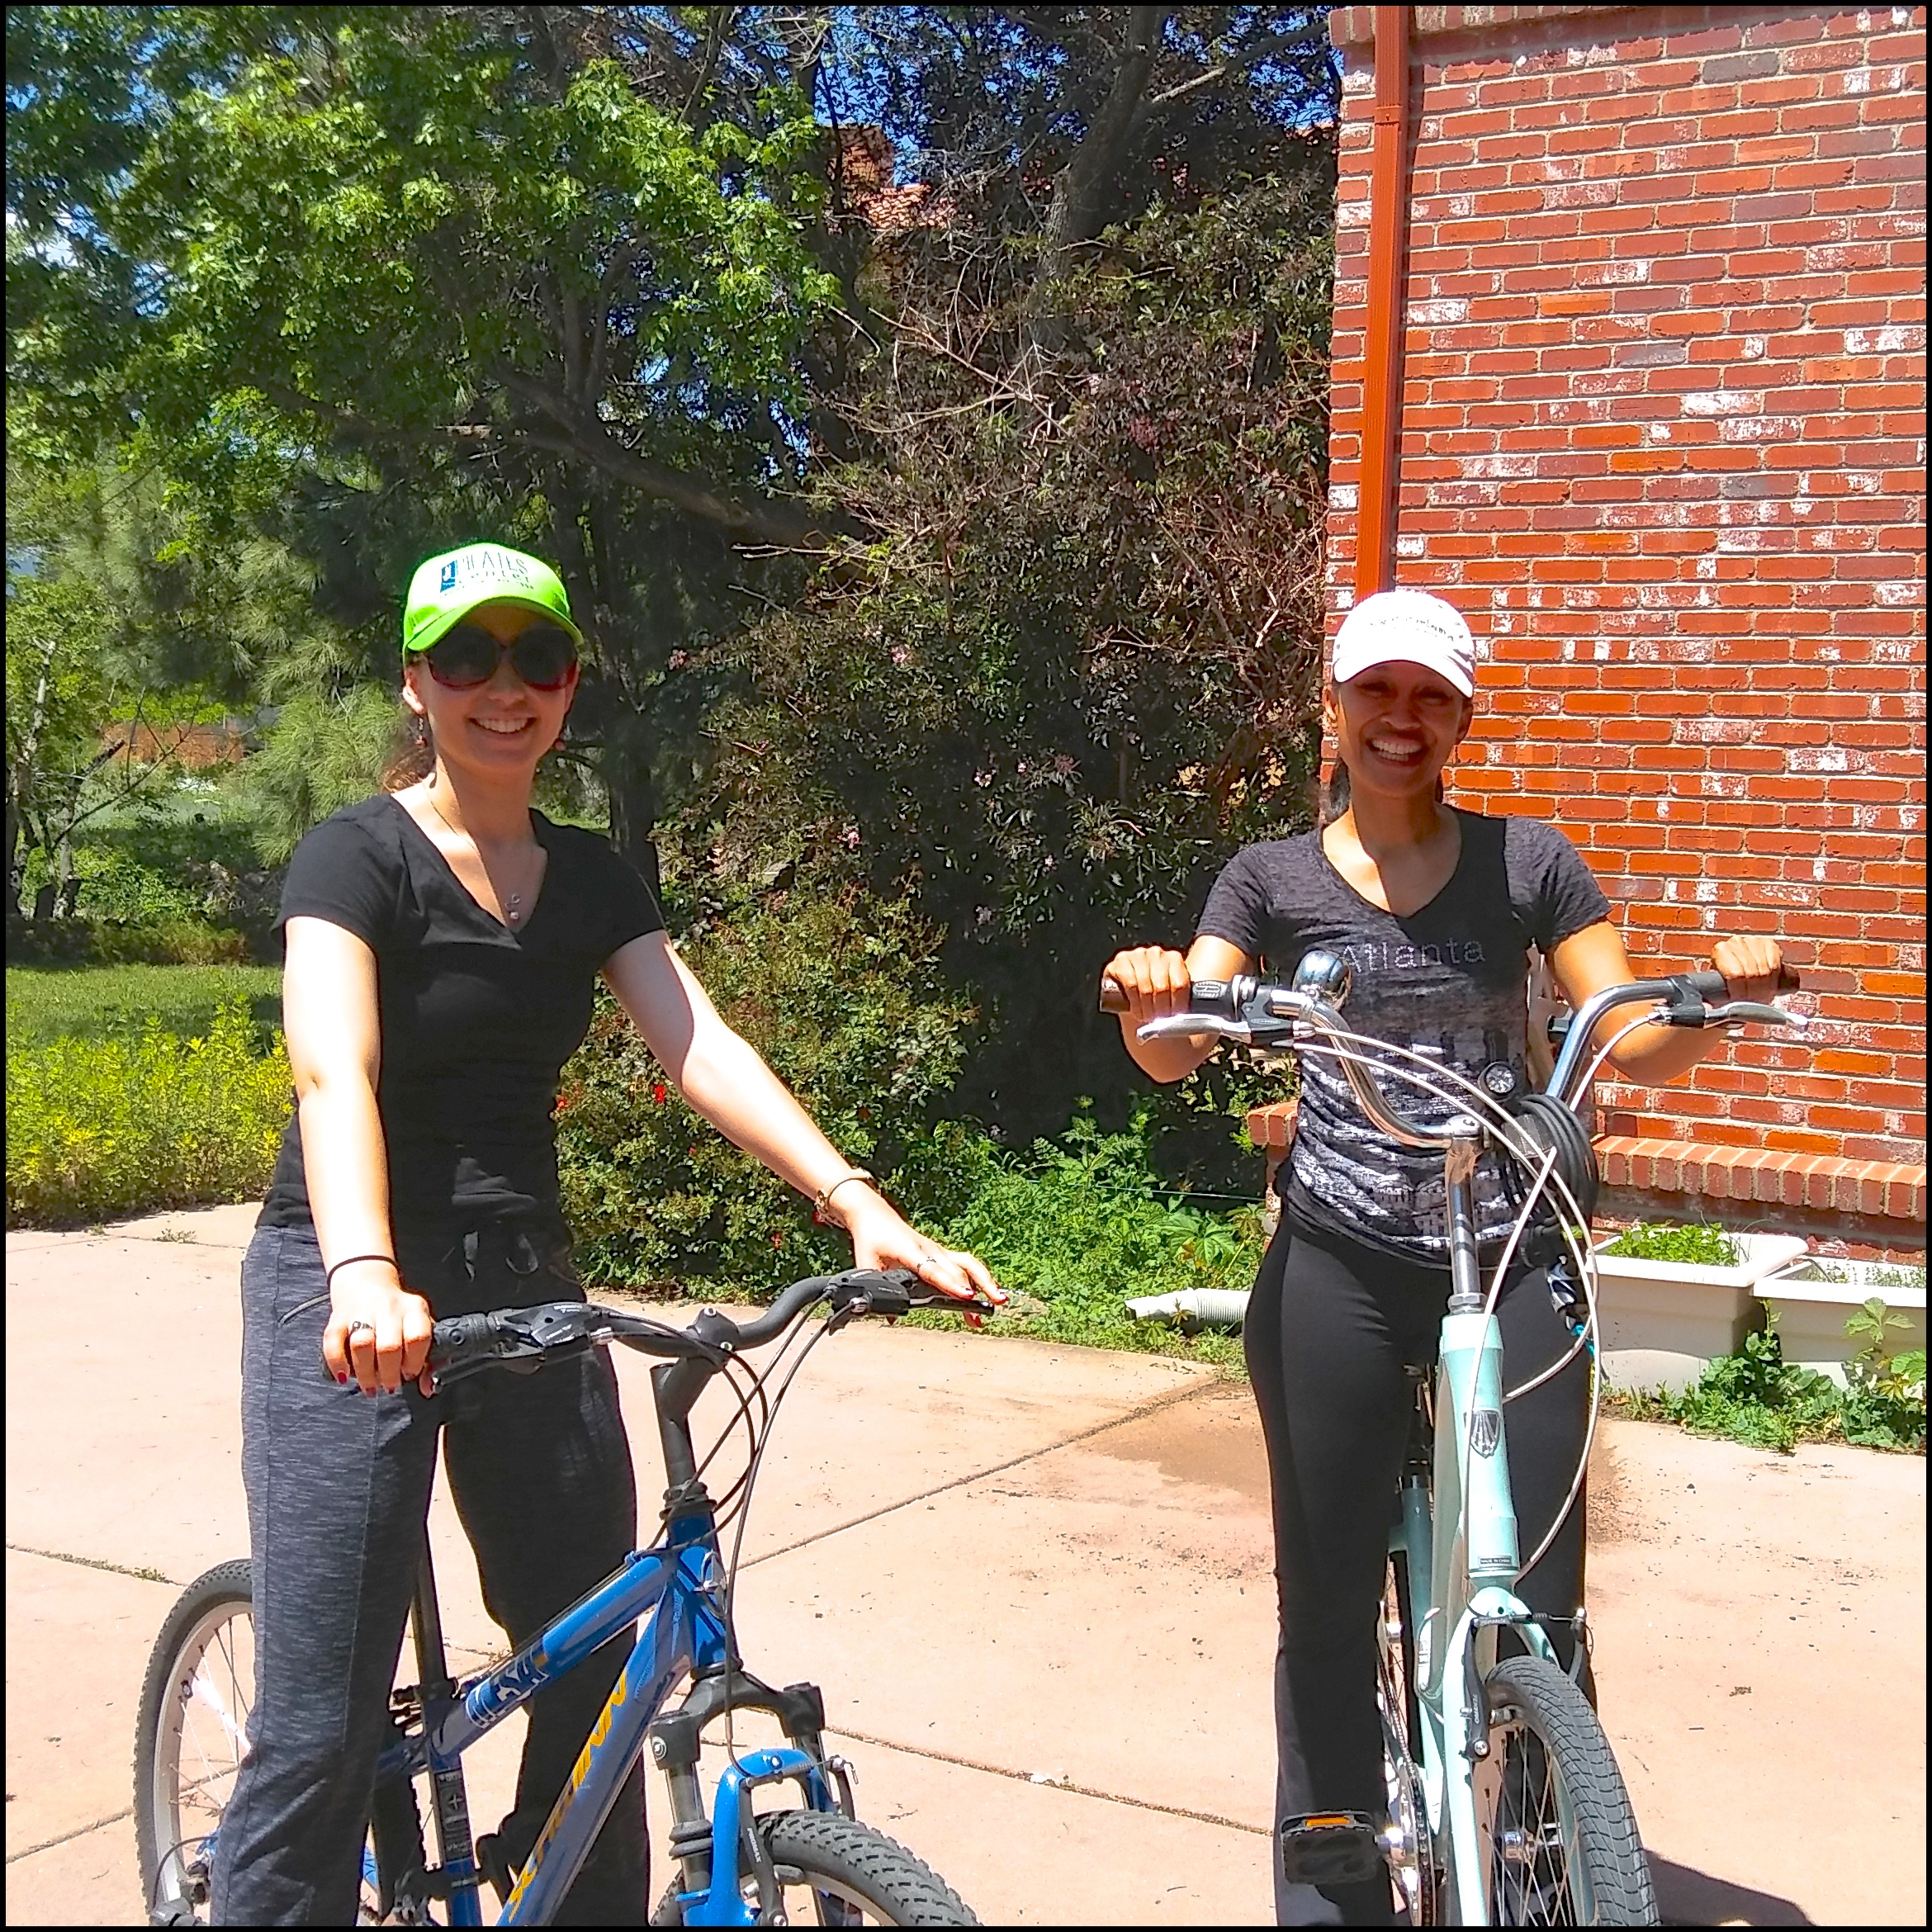 Erika (left) and Kimberly (right) embrace Boulder, CO culture during their certification trip to The Pilates Center.